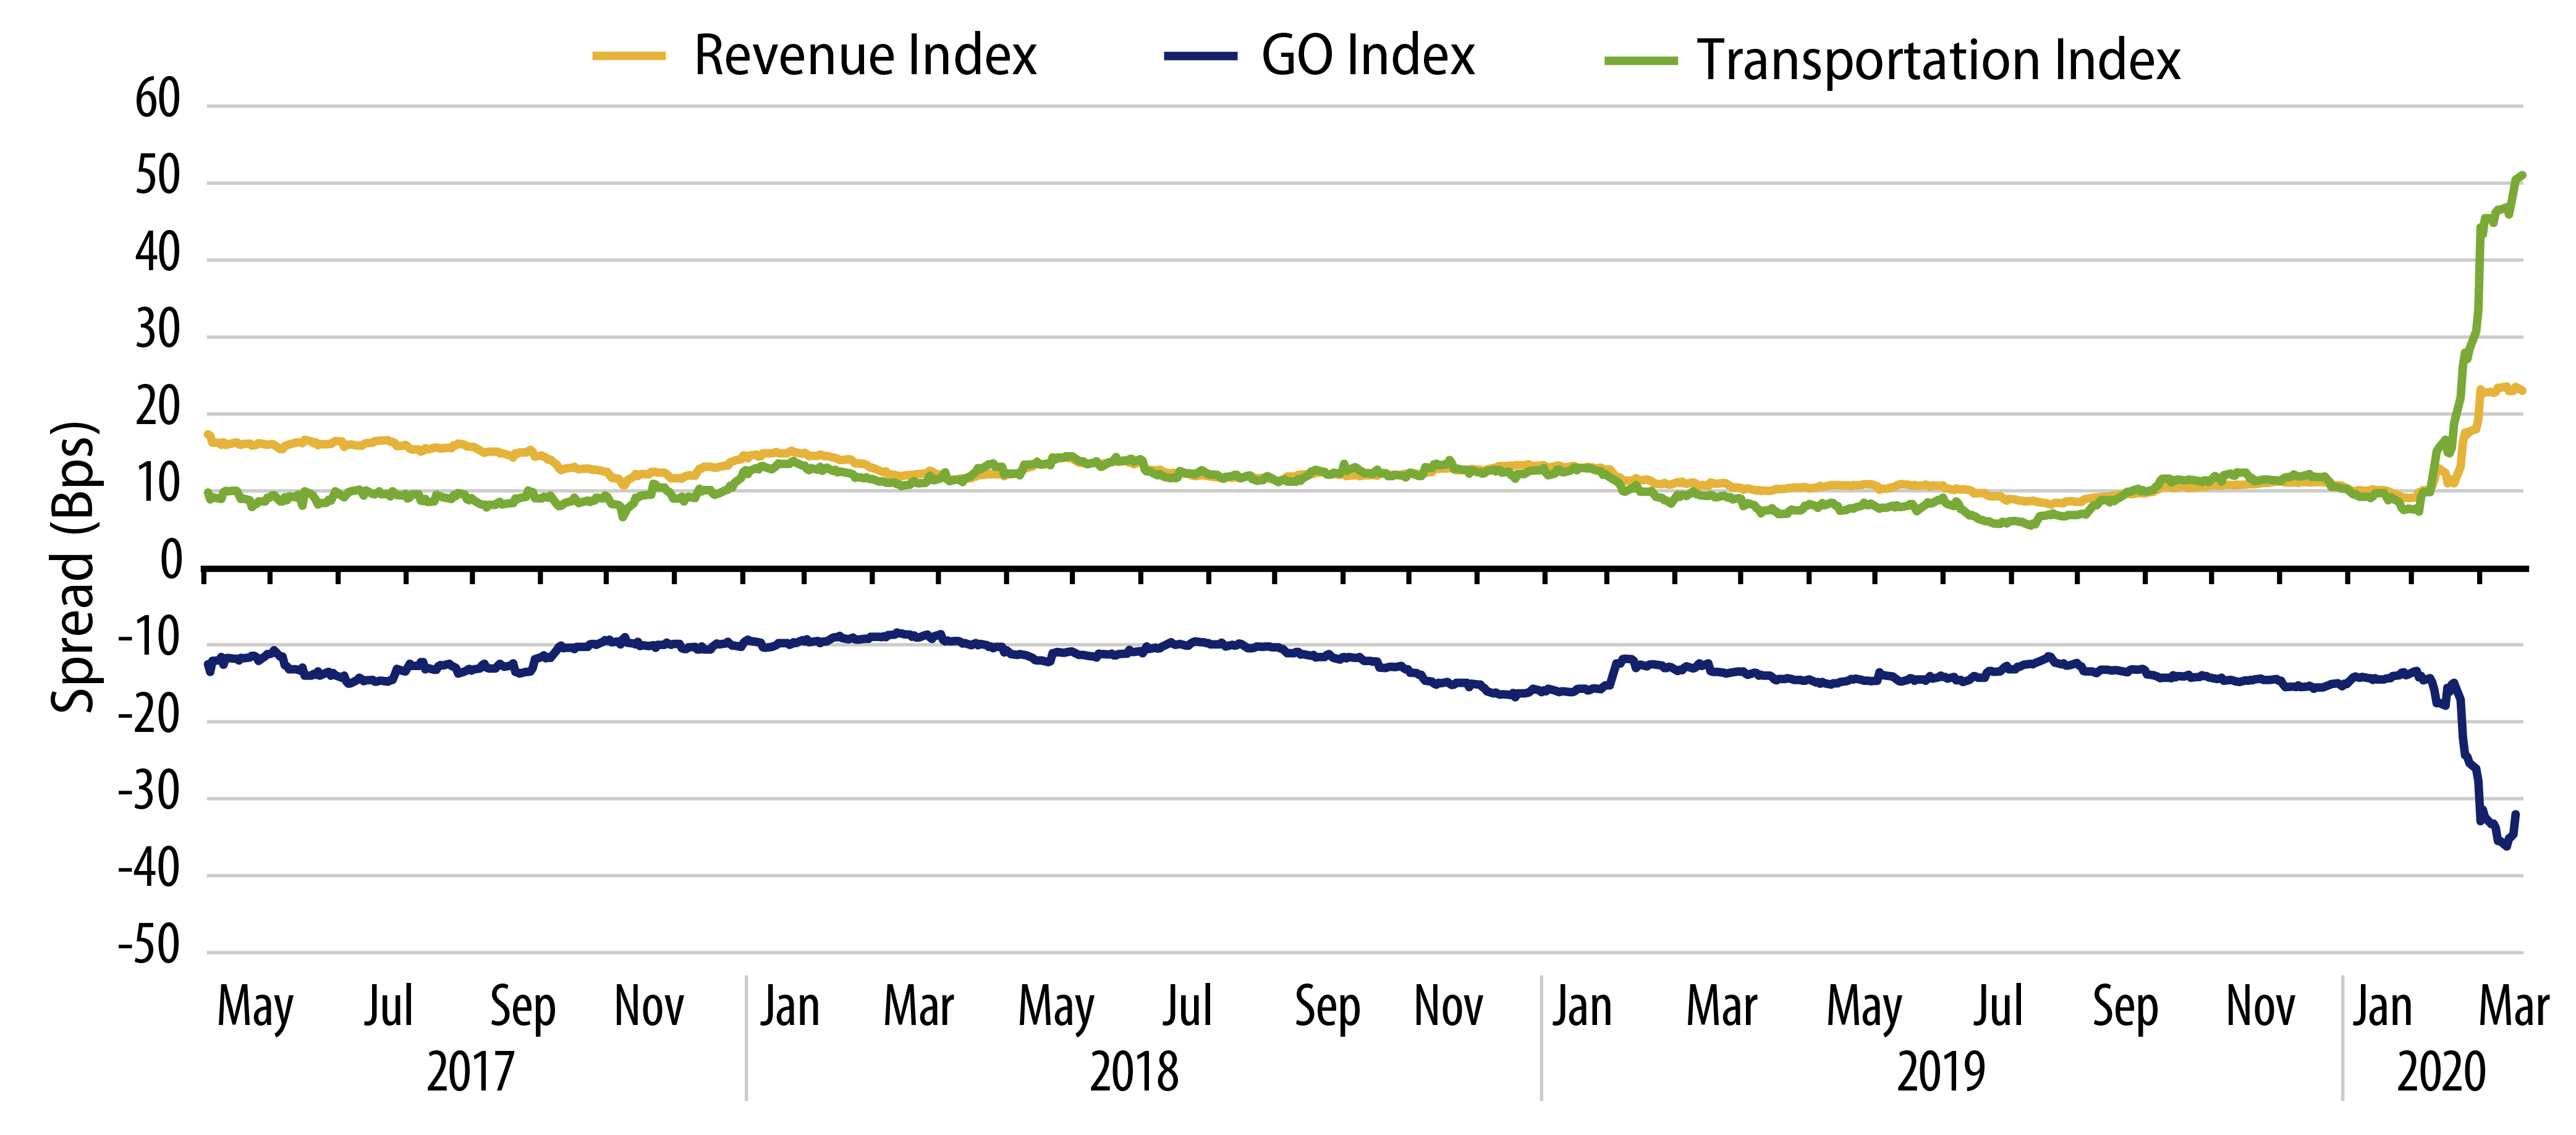 Explore Investment-Grade Transportation and Revenue Sector Spreads.